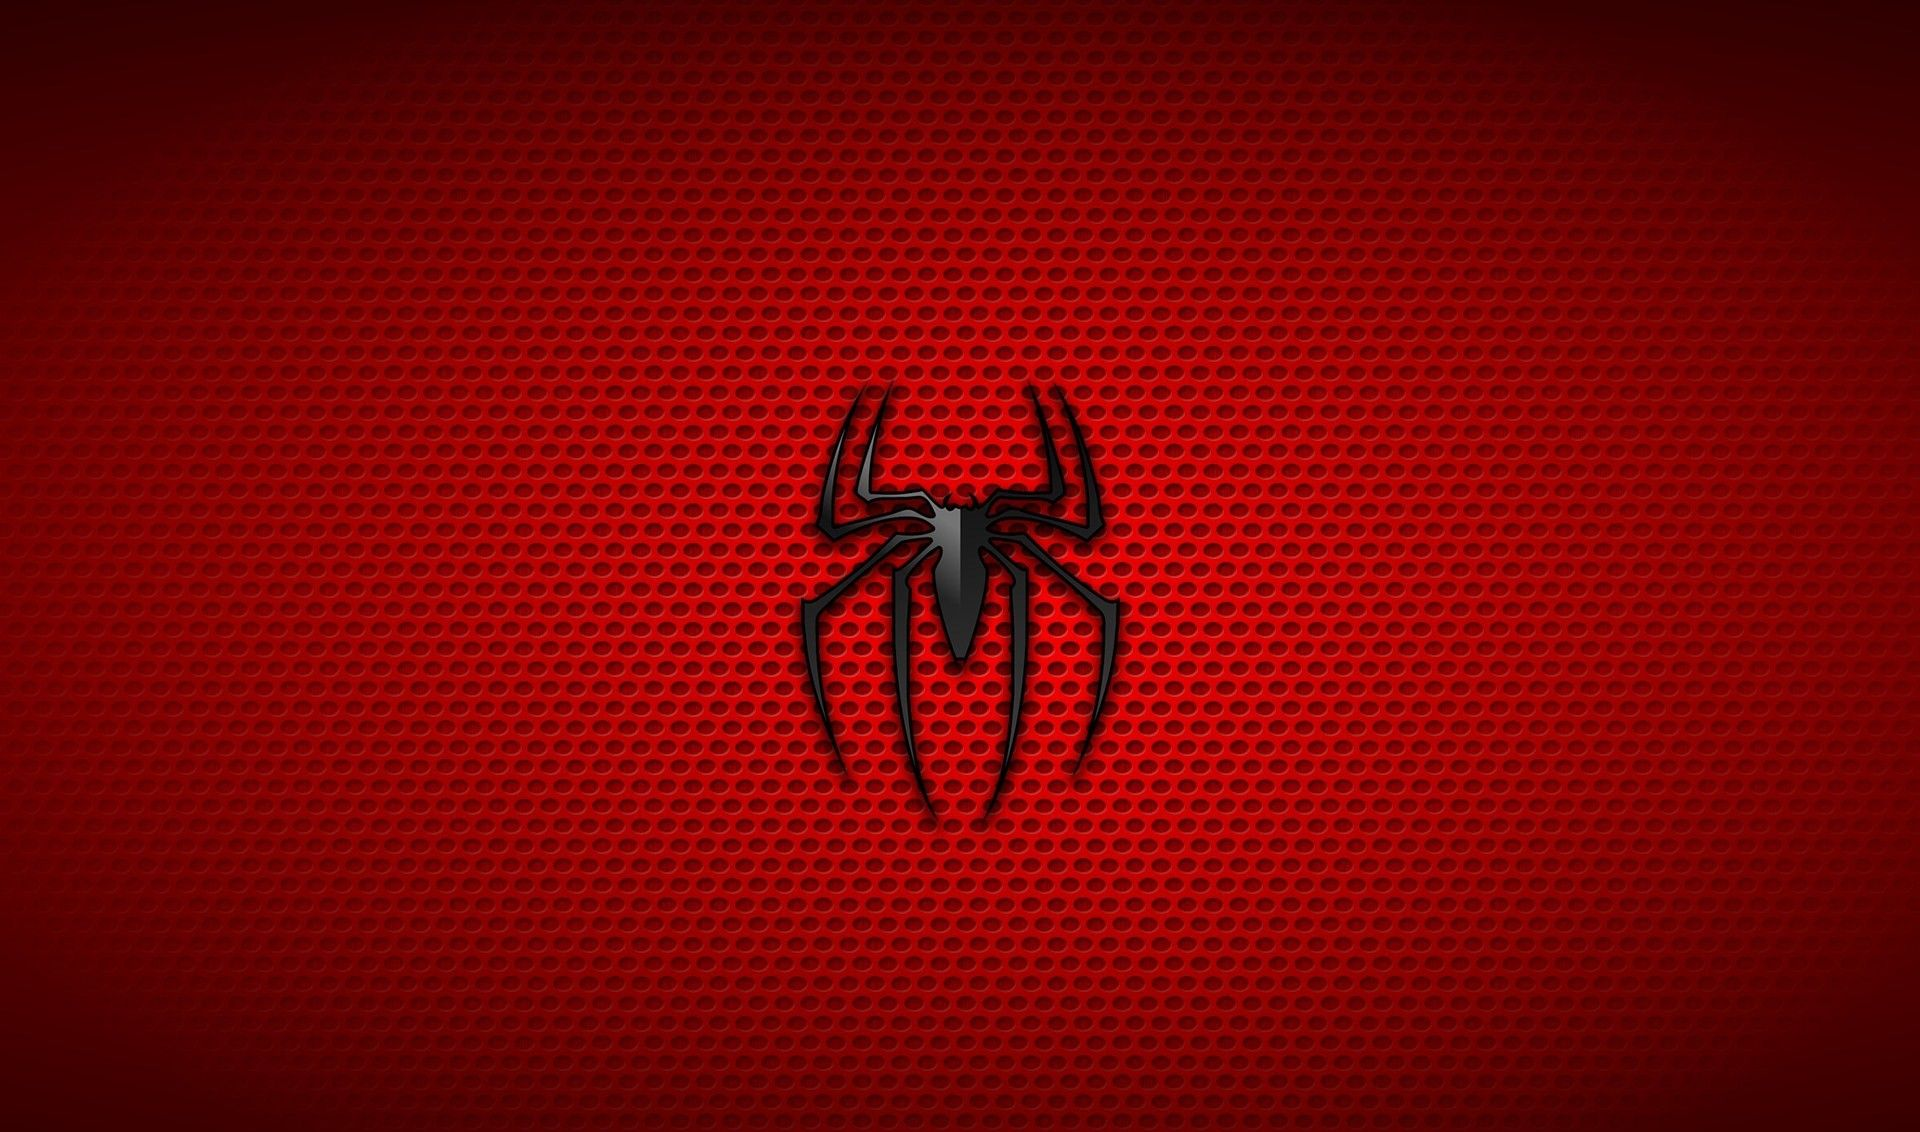 Ultra Hd 4k Wallpapers For Iphone Spiderman Hd Wallpapers 01188 Baltana